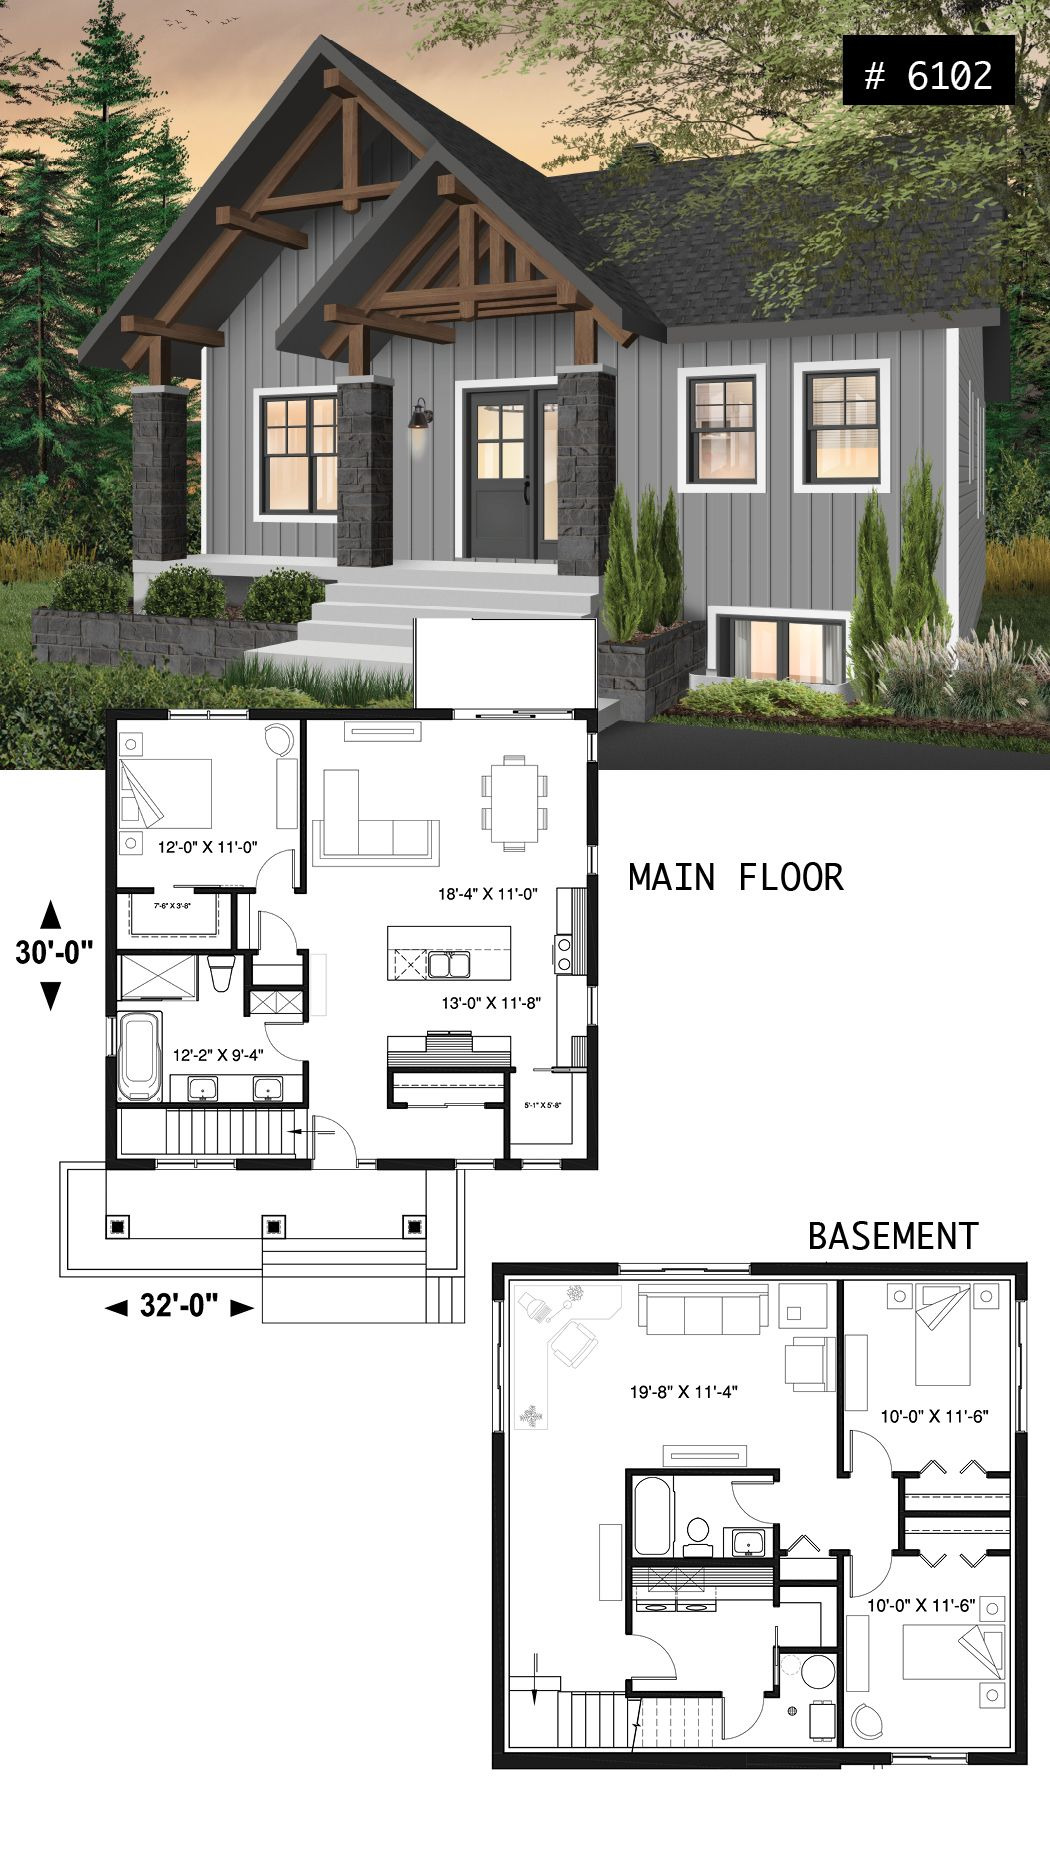 Small Affordable Houses to Build Luxury House Plan nordika No 6102